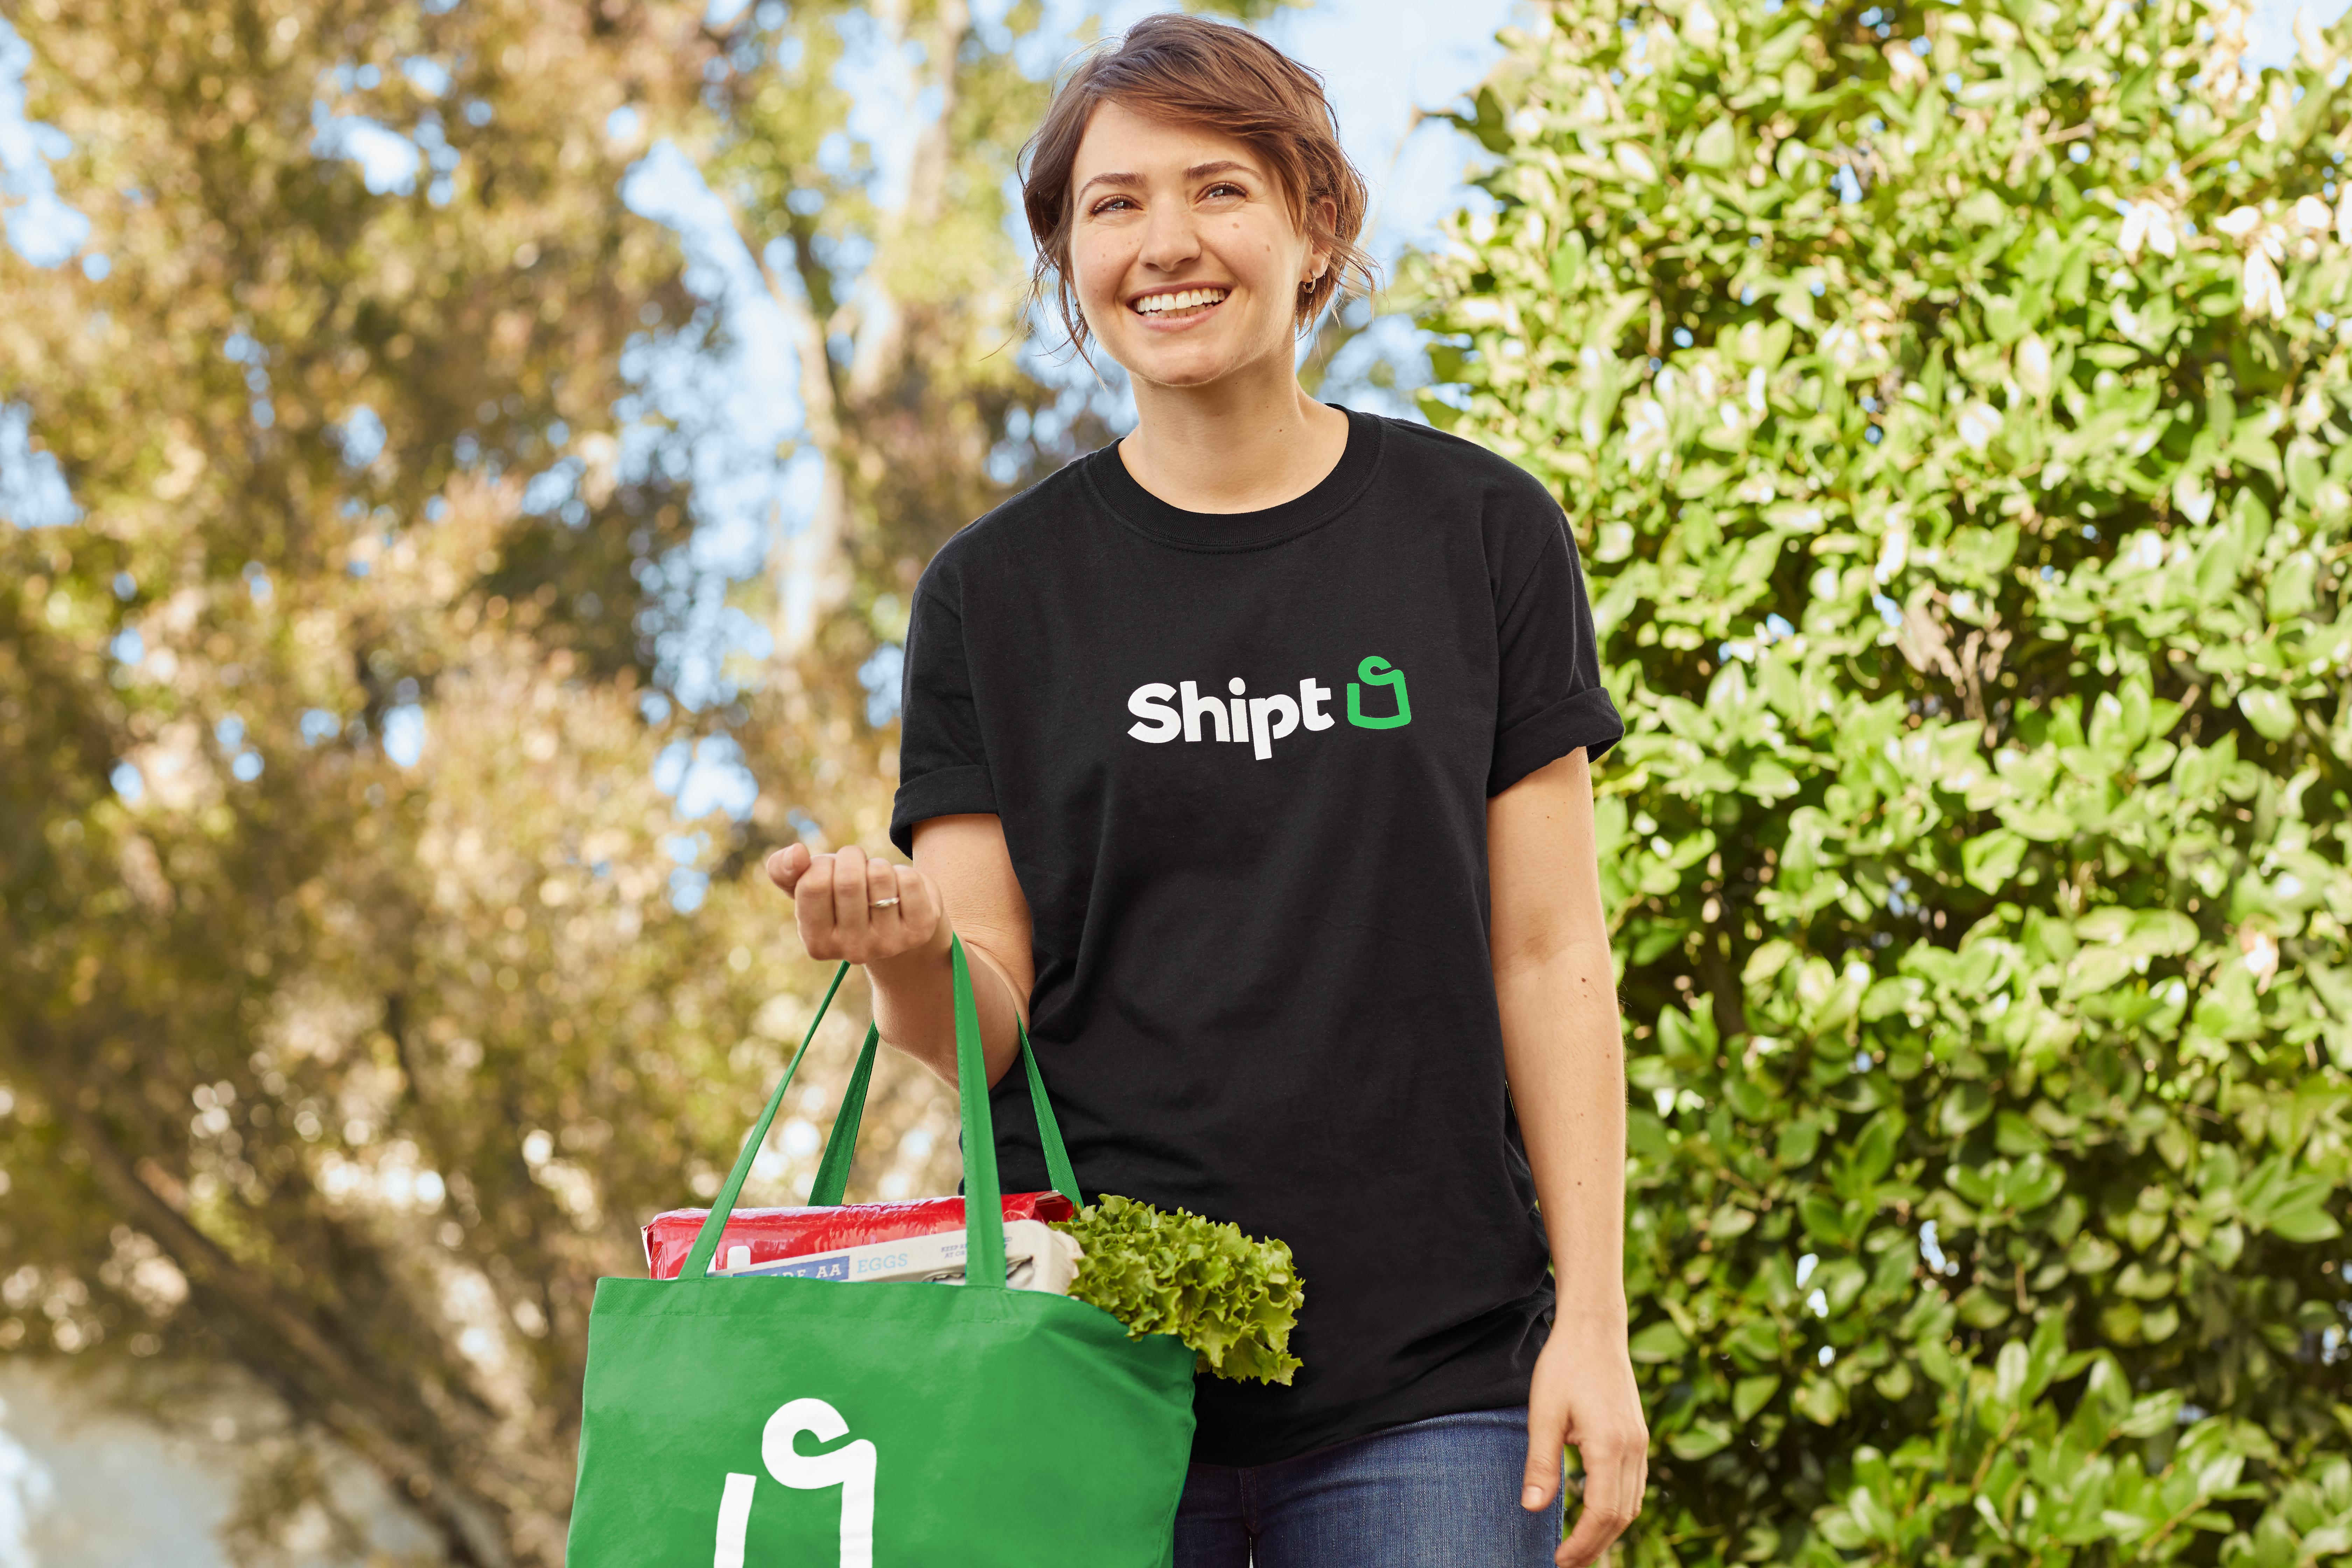 A Shipt Shopper in a black t-shirt smiles as the holds a green bag of groceries on her arm.